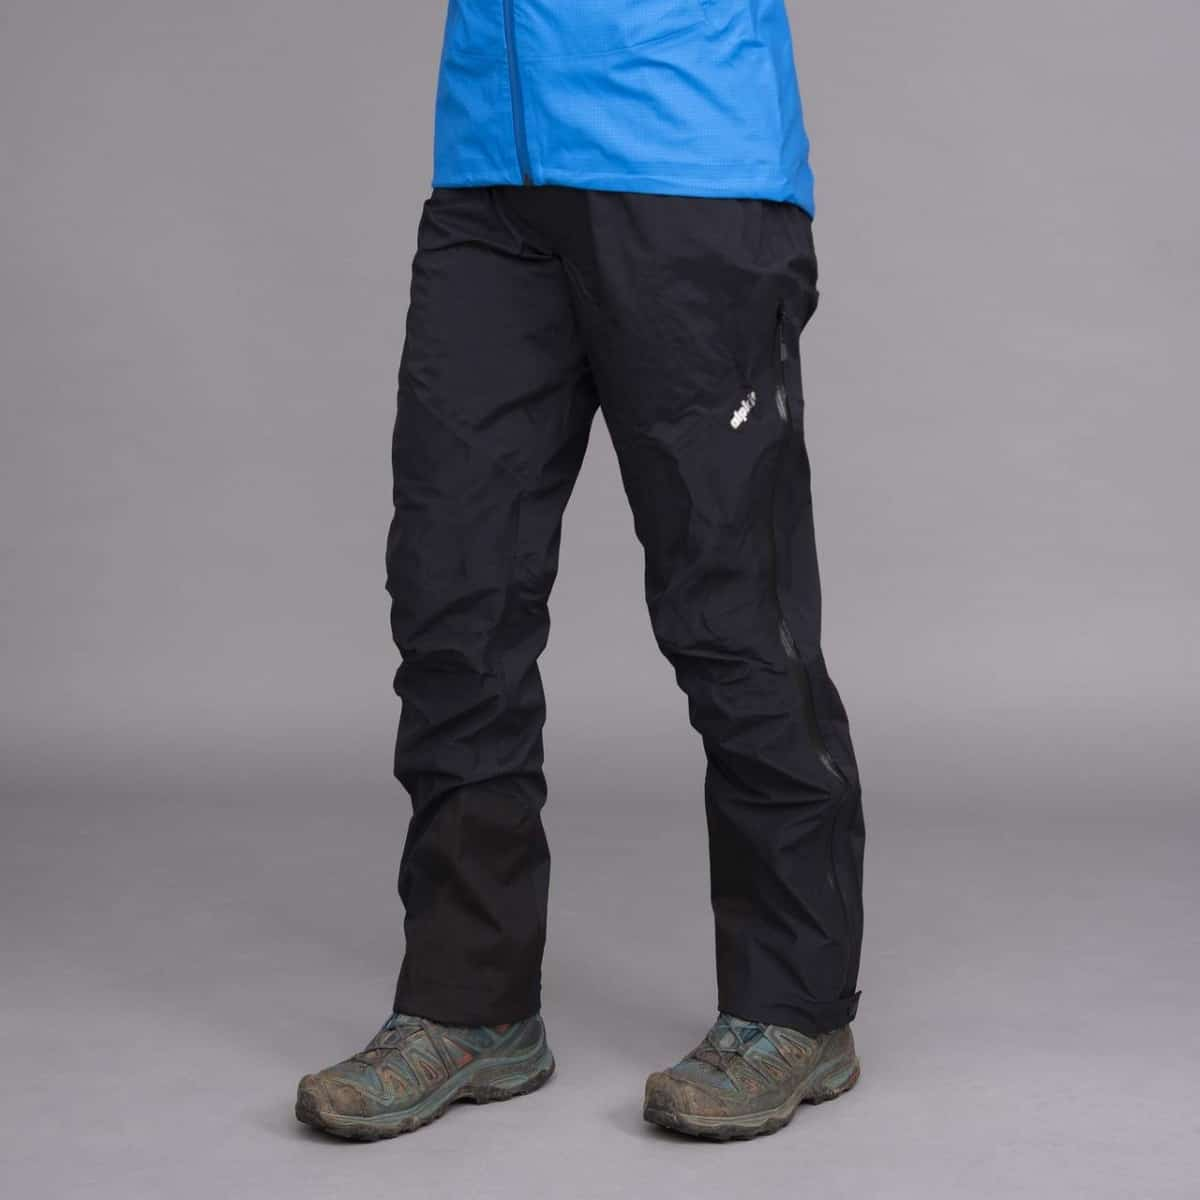 Women's Nautilus waterproof over trousers product review